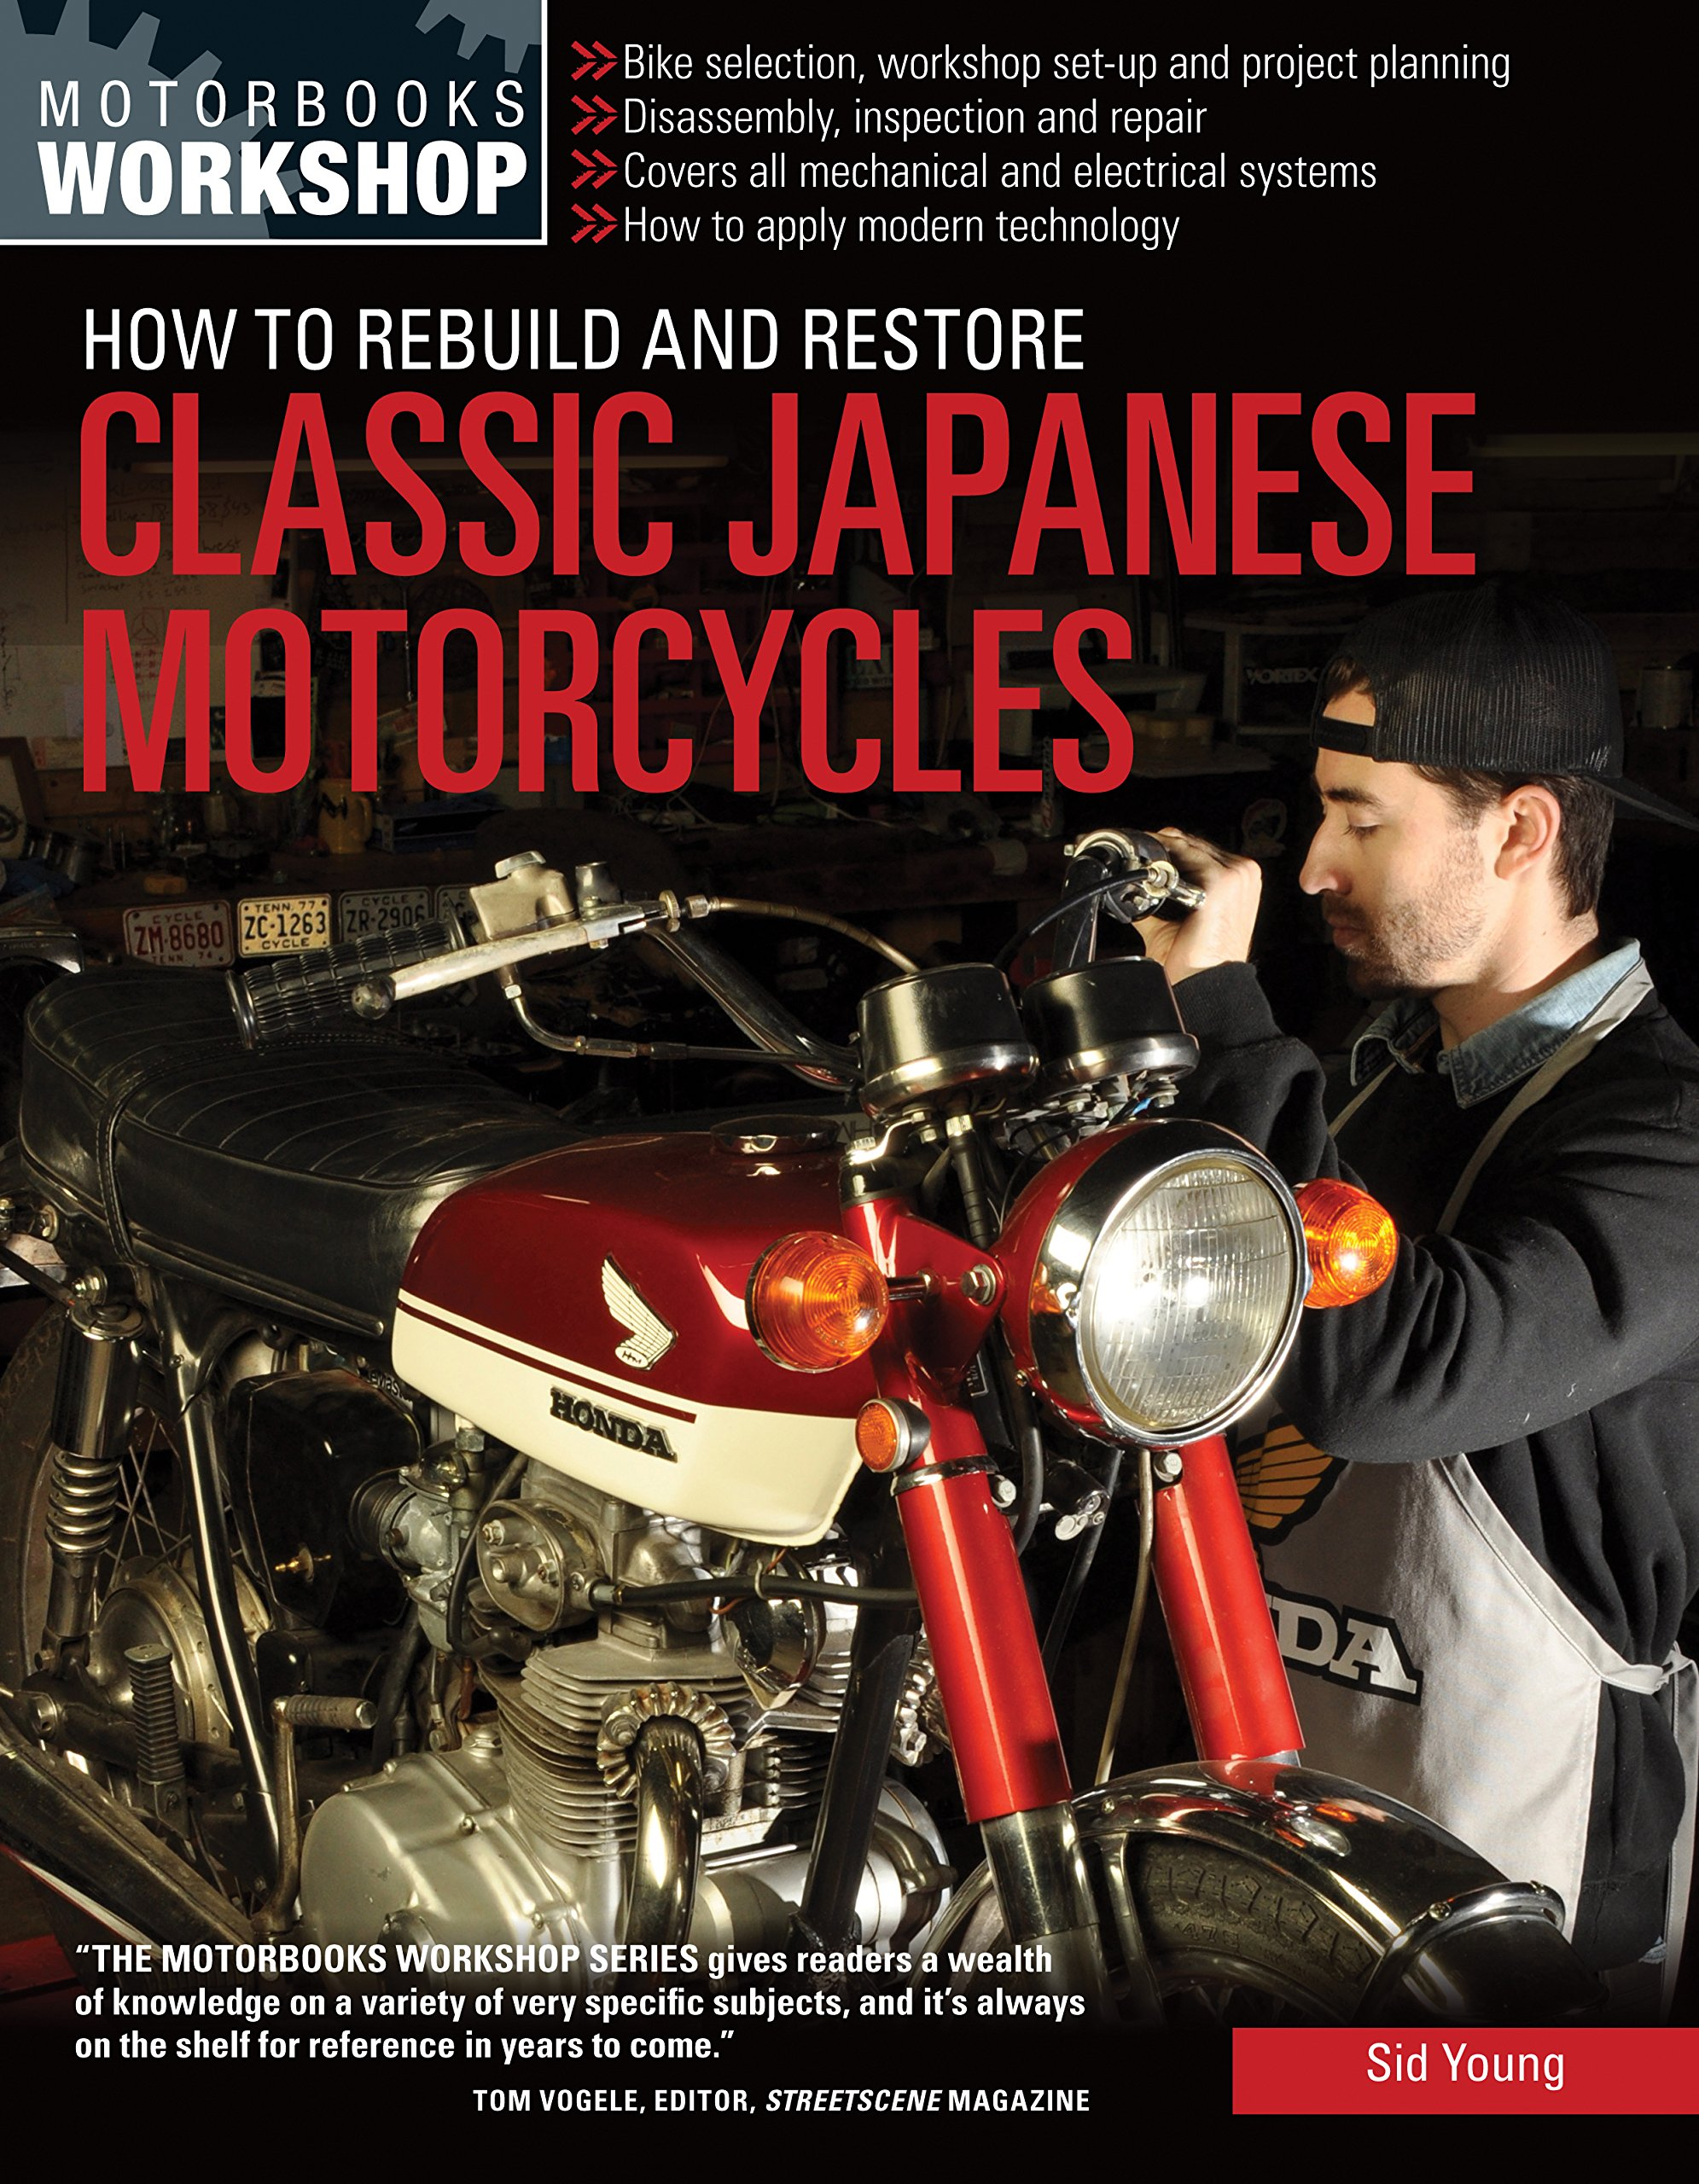 how to rebuild and restore classic japanese motorcycles 91wb7zpbful 0760347972 motorcycle mechanic job description apple